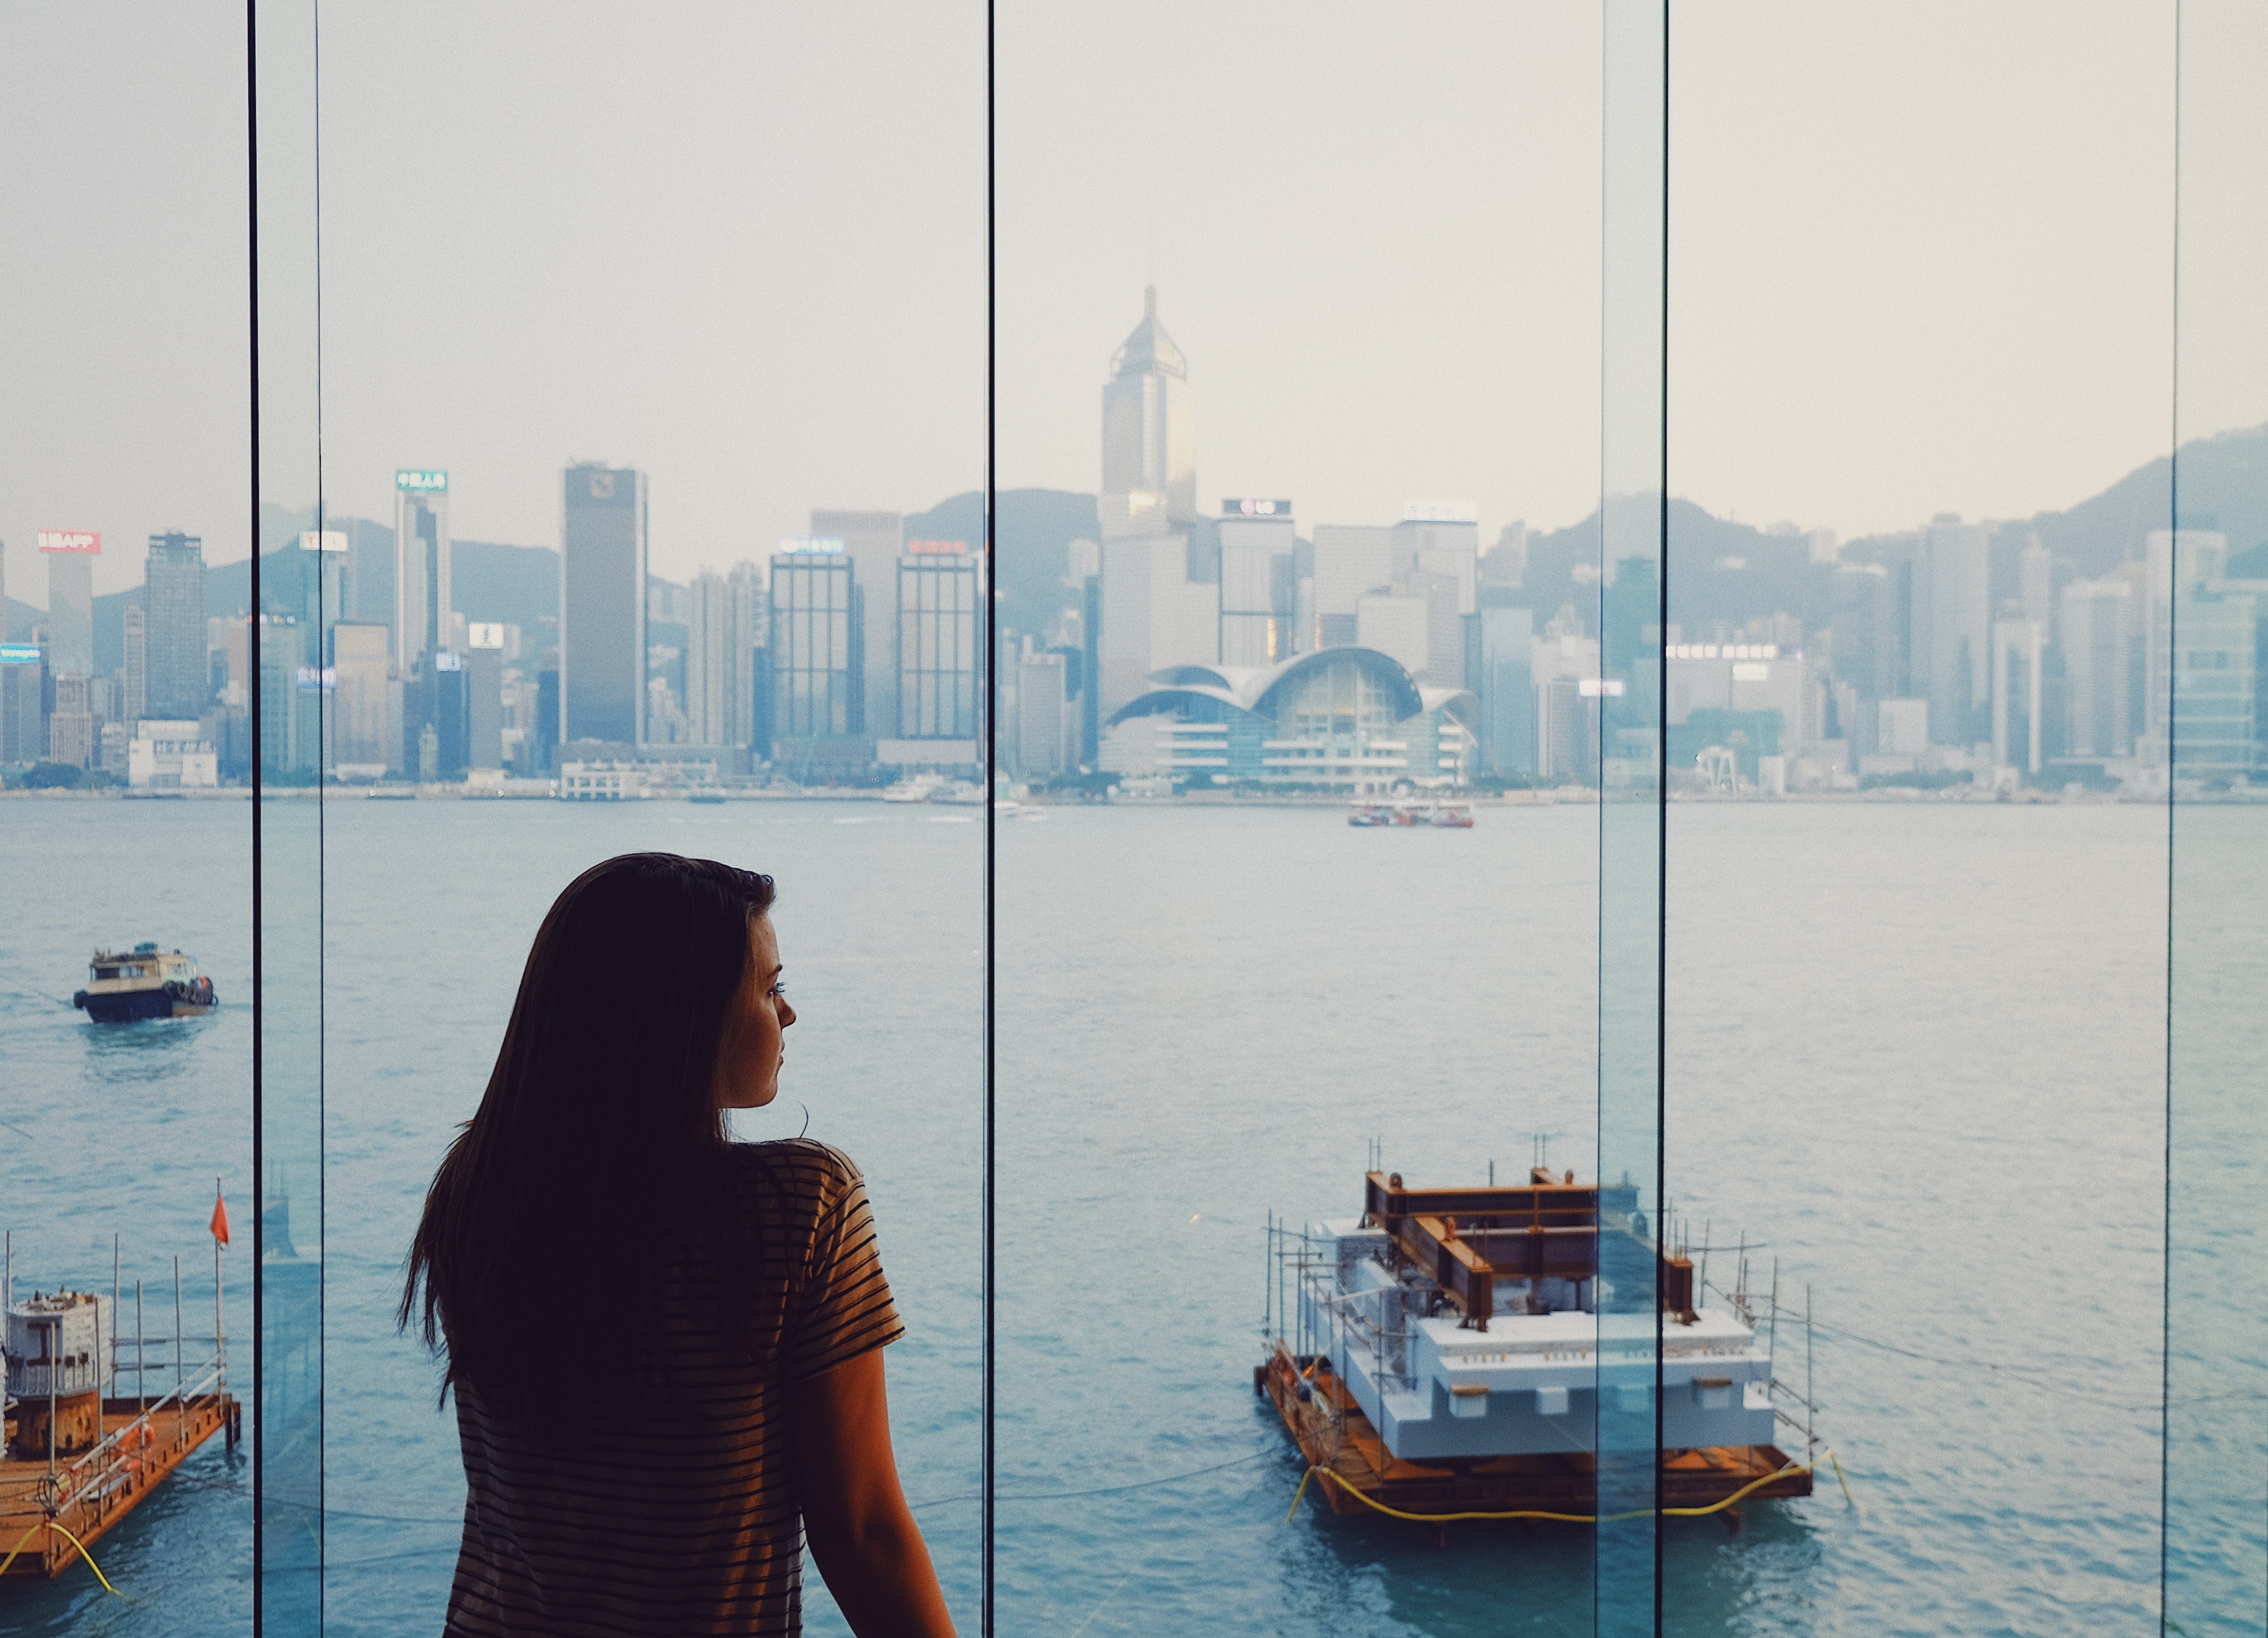 woman standing on glass window facing body of water